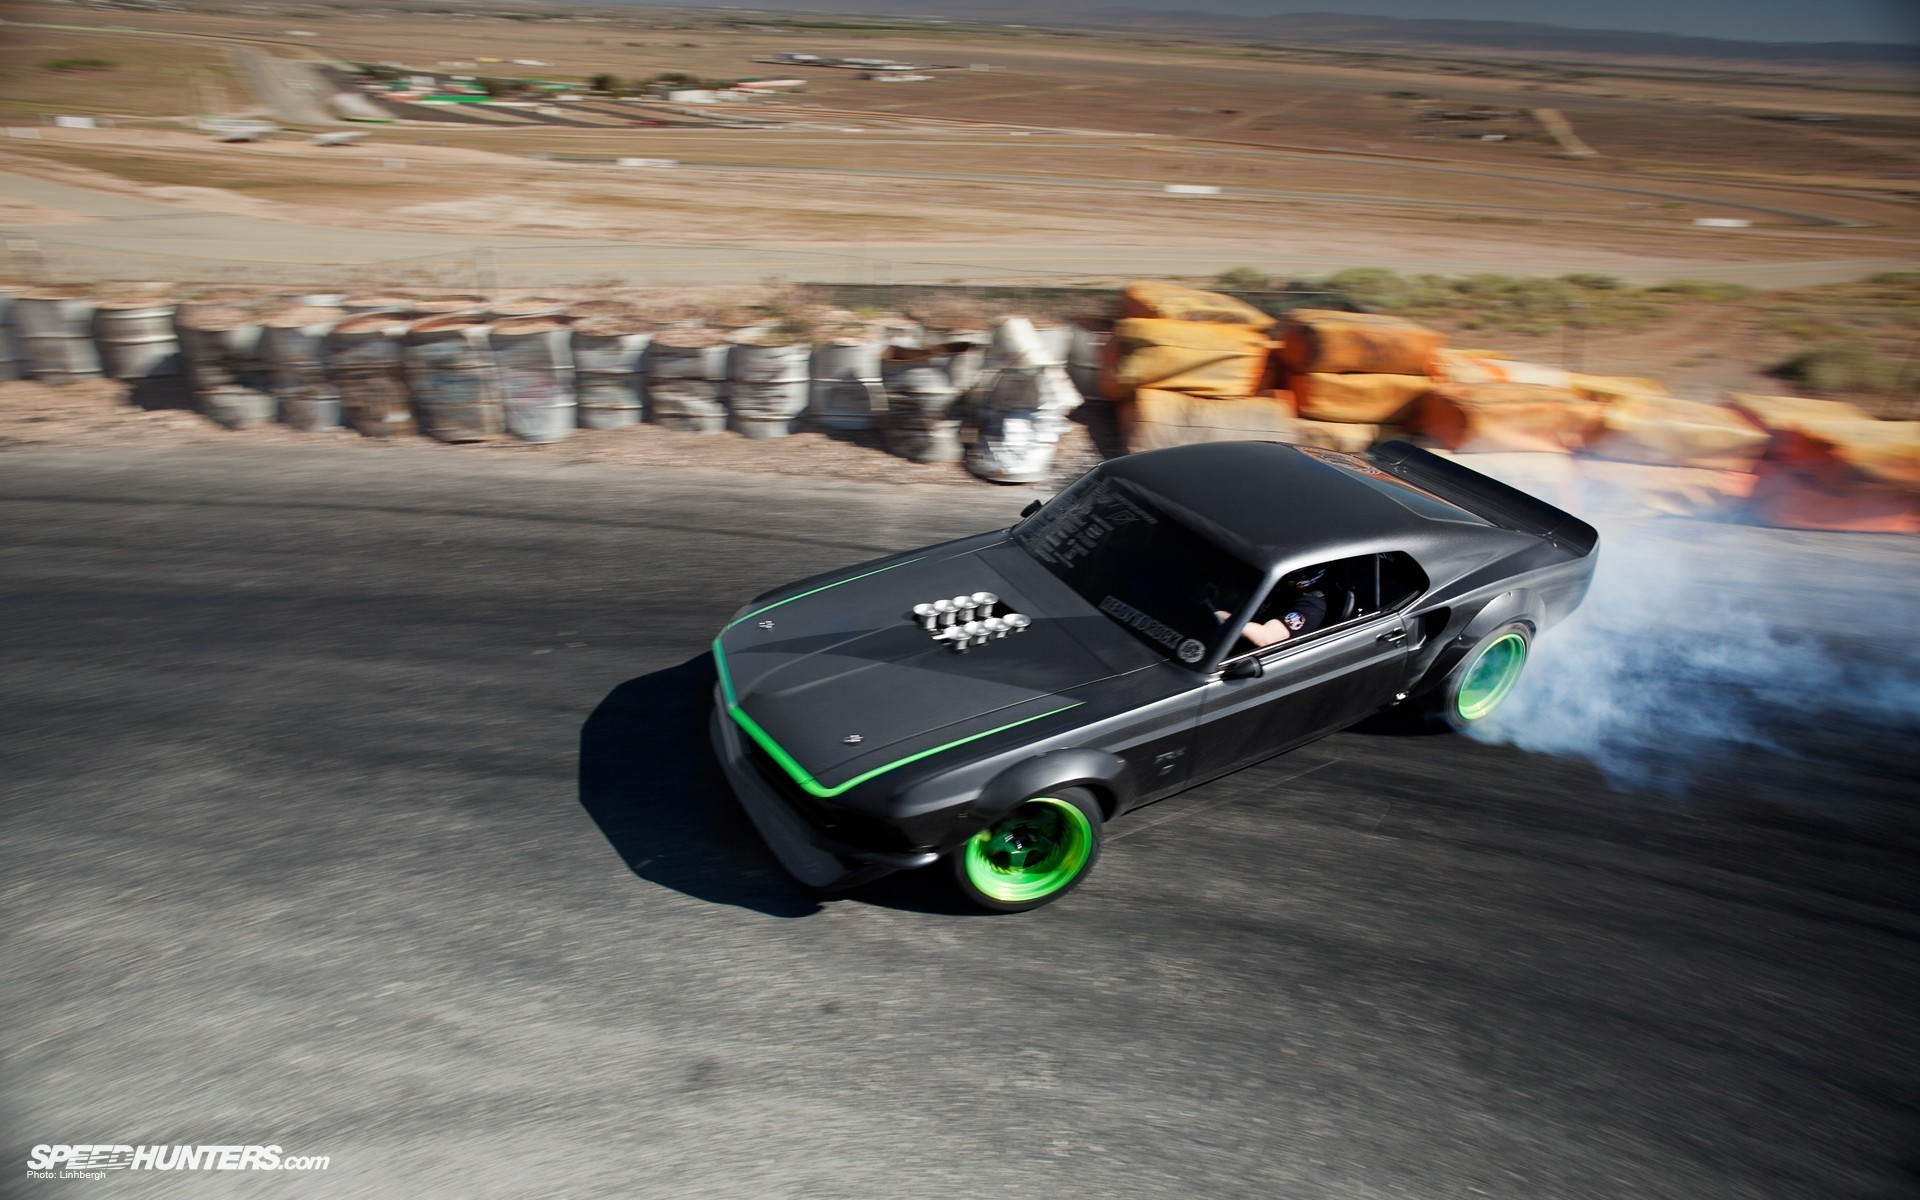 Ford drifting cars vehicles